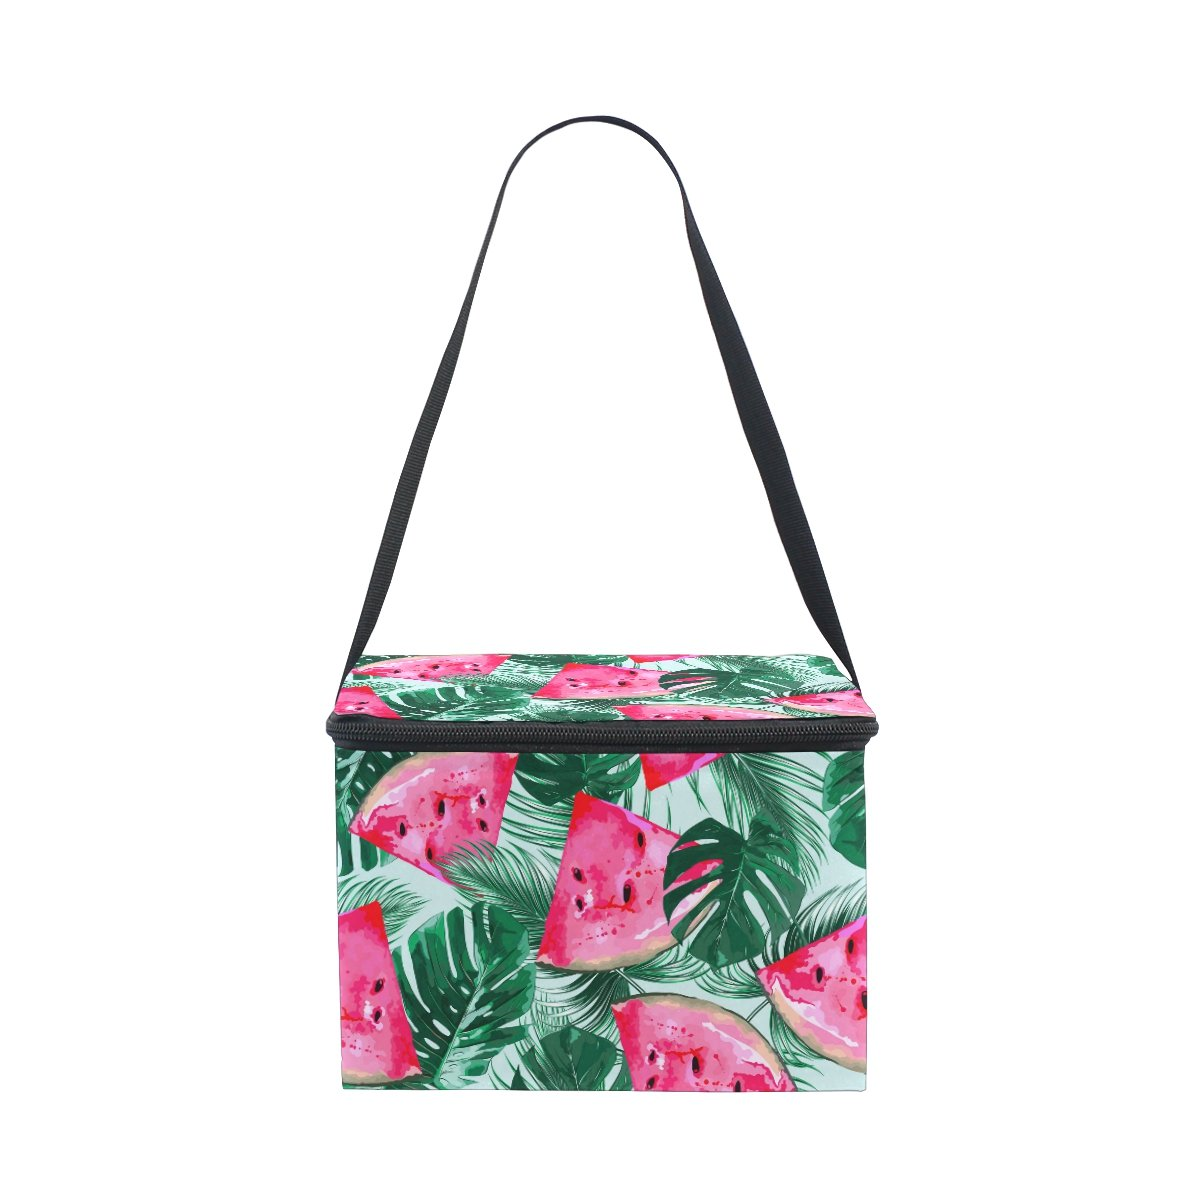 ALAZA Watermelon Palm Tree Insulated Lunch Bag Box Cooler Bag Reusable Tote Bag Outdoor Travel Picnic Bag With Shoulder Strap for Women Men Adults Kids